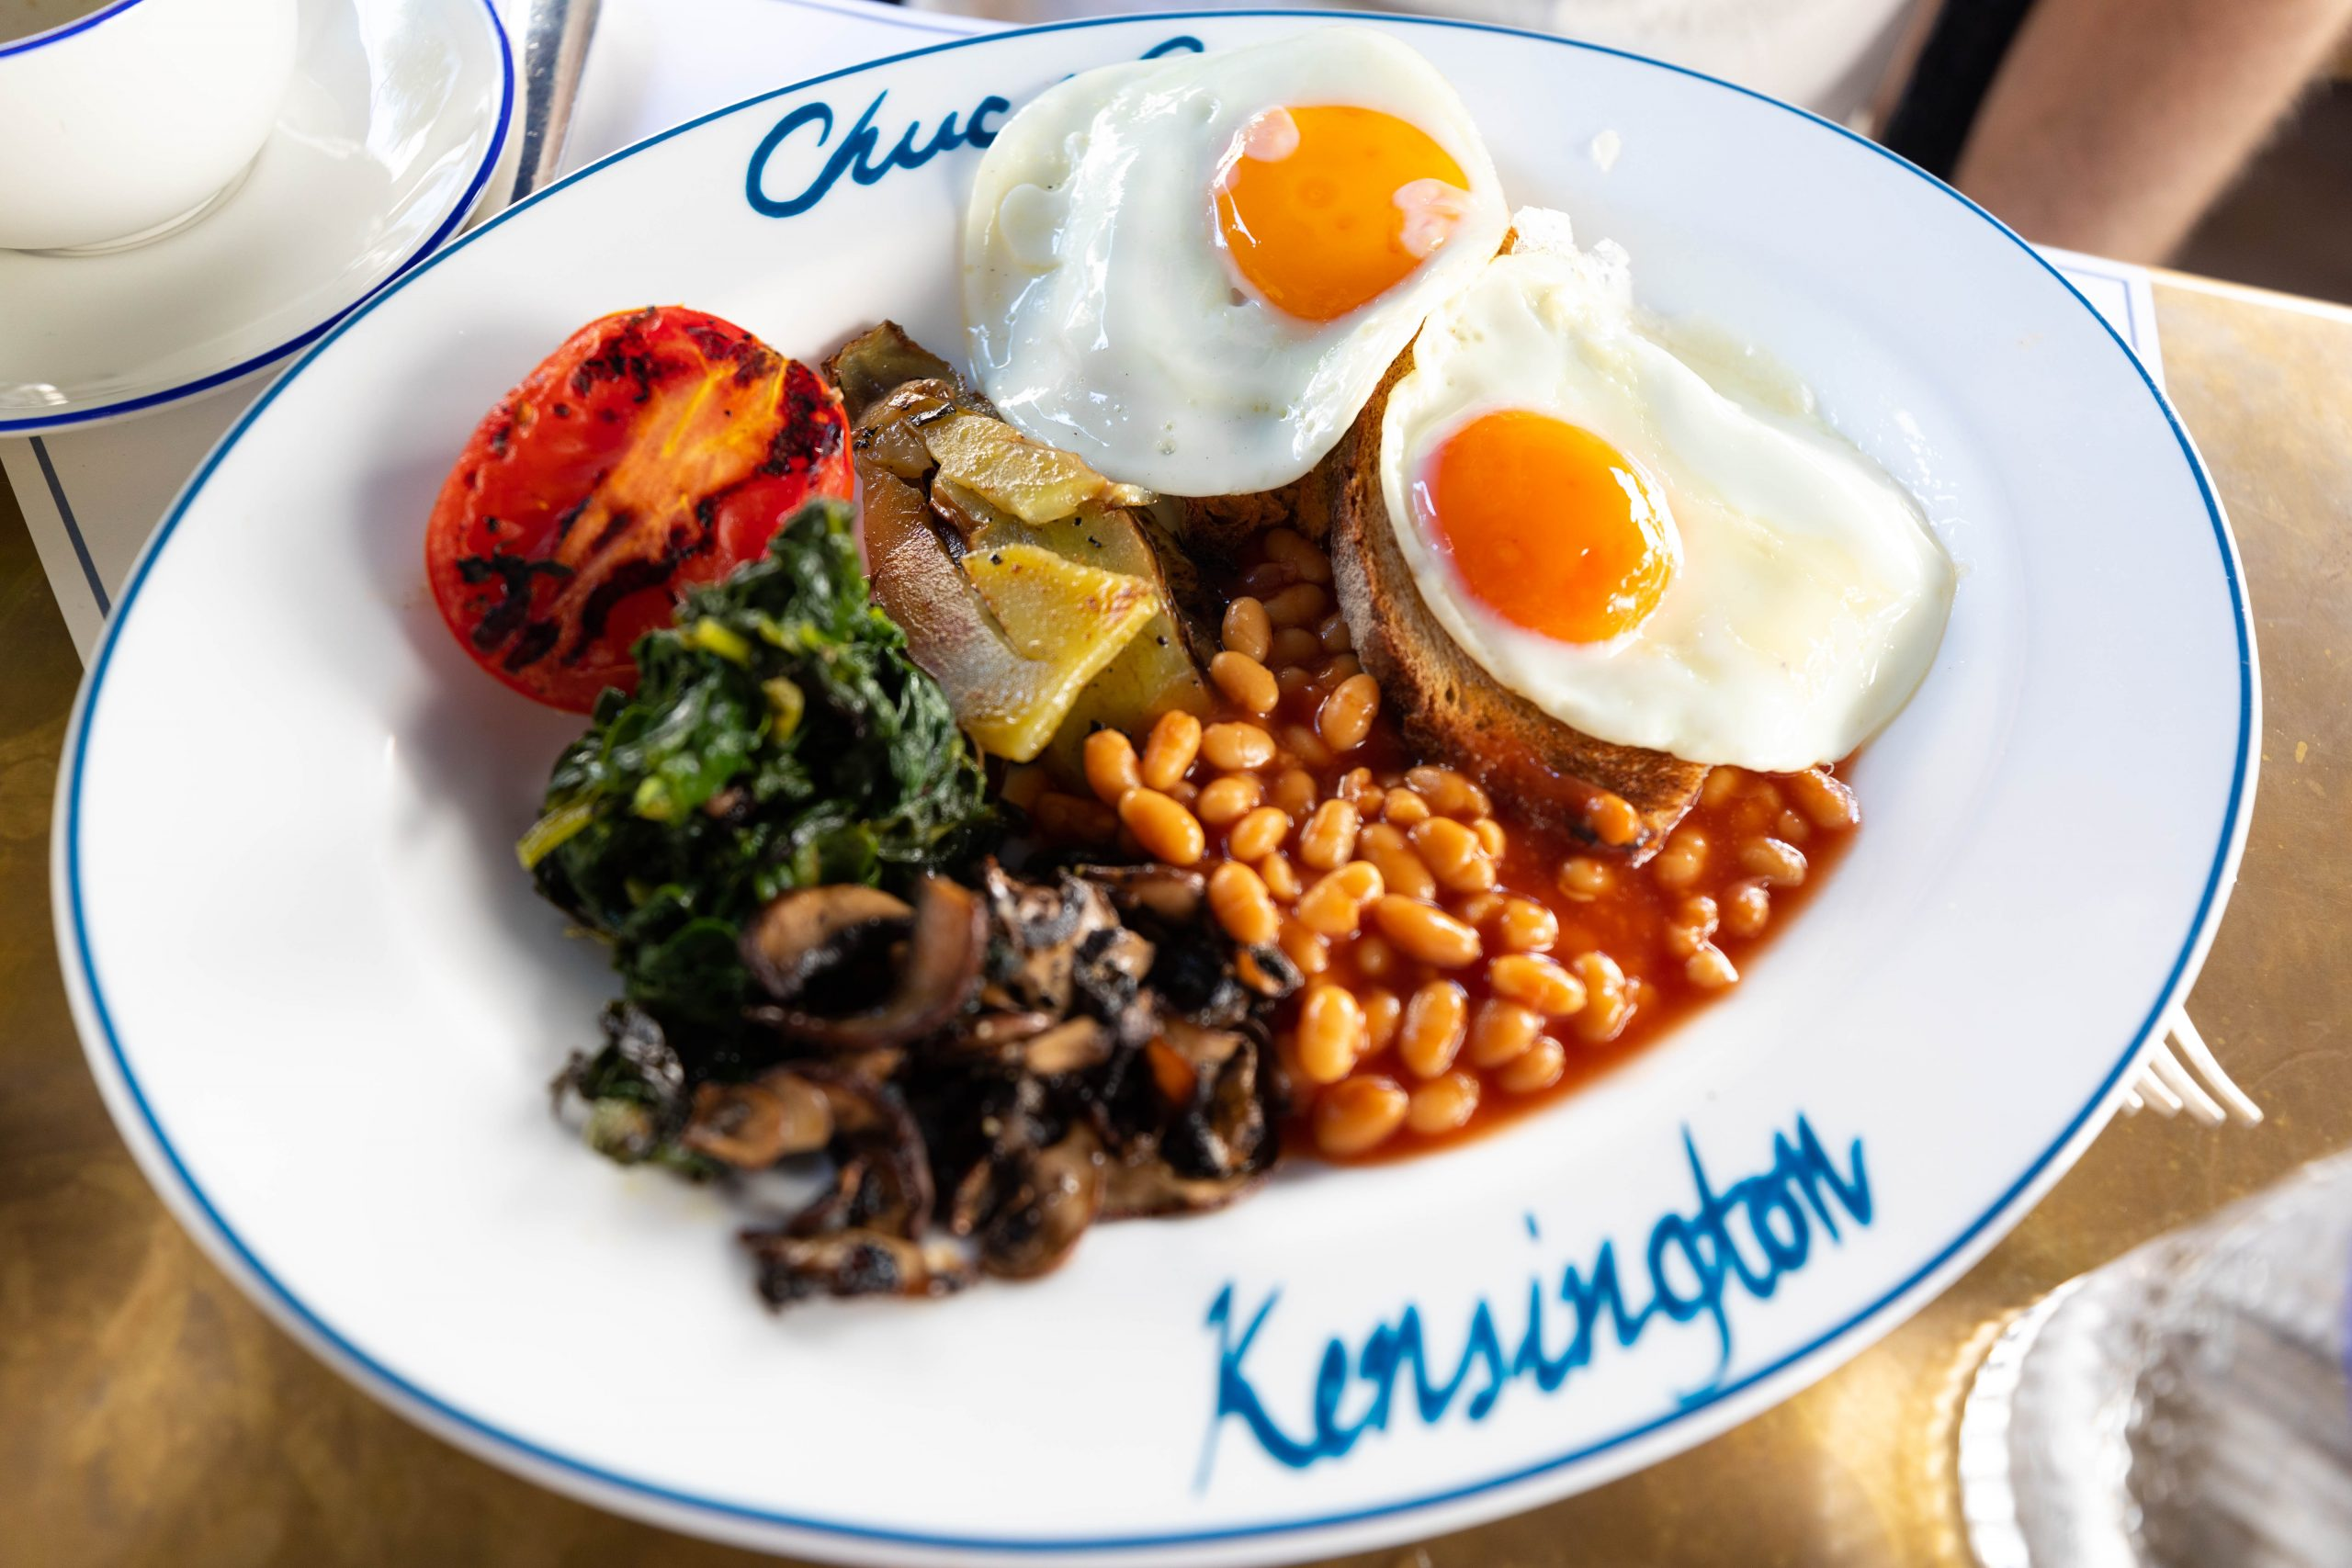 Full English Breakfast Chuc's Café in Kensington London England United Kingdom Luxury Cafés Slim Aaron Italian Yacht Mediterranean Inspired Restaurant by Annie Fairfax